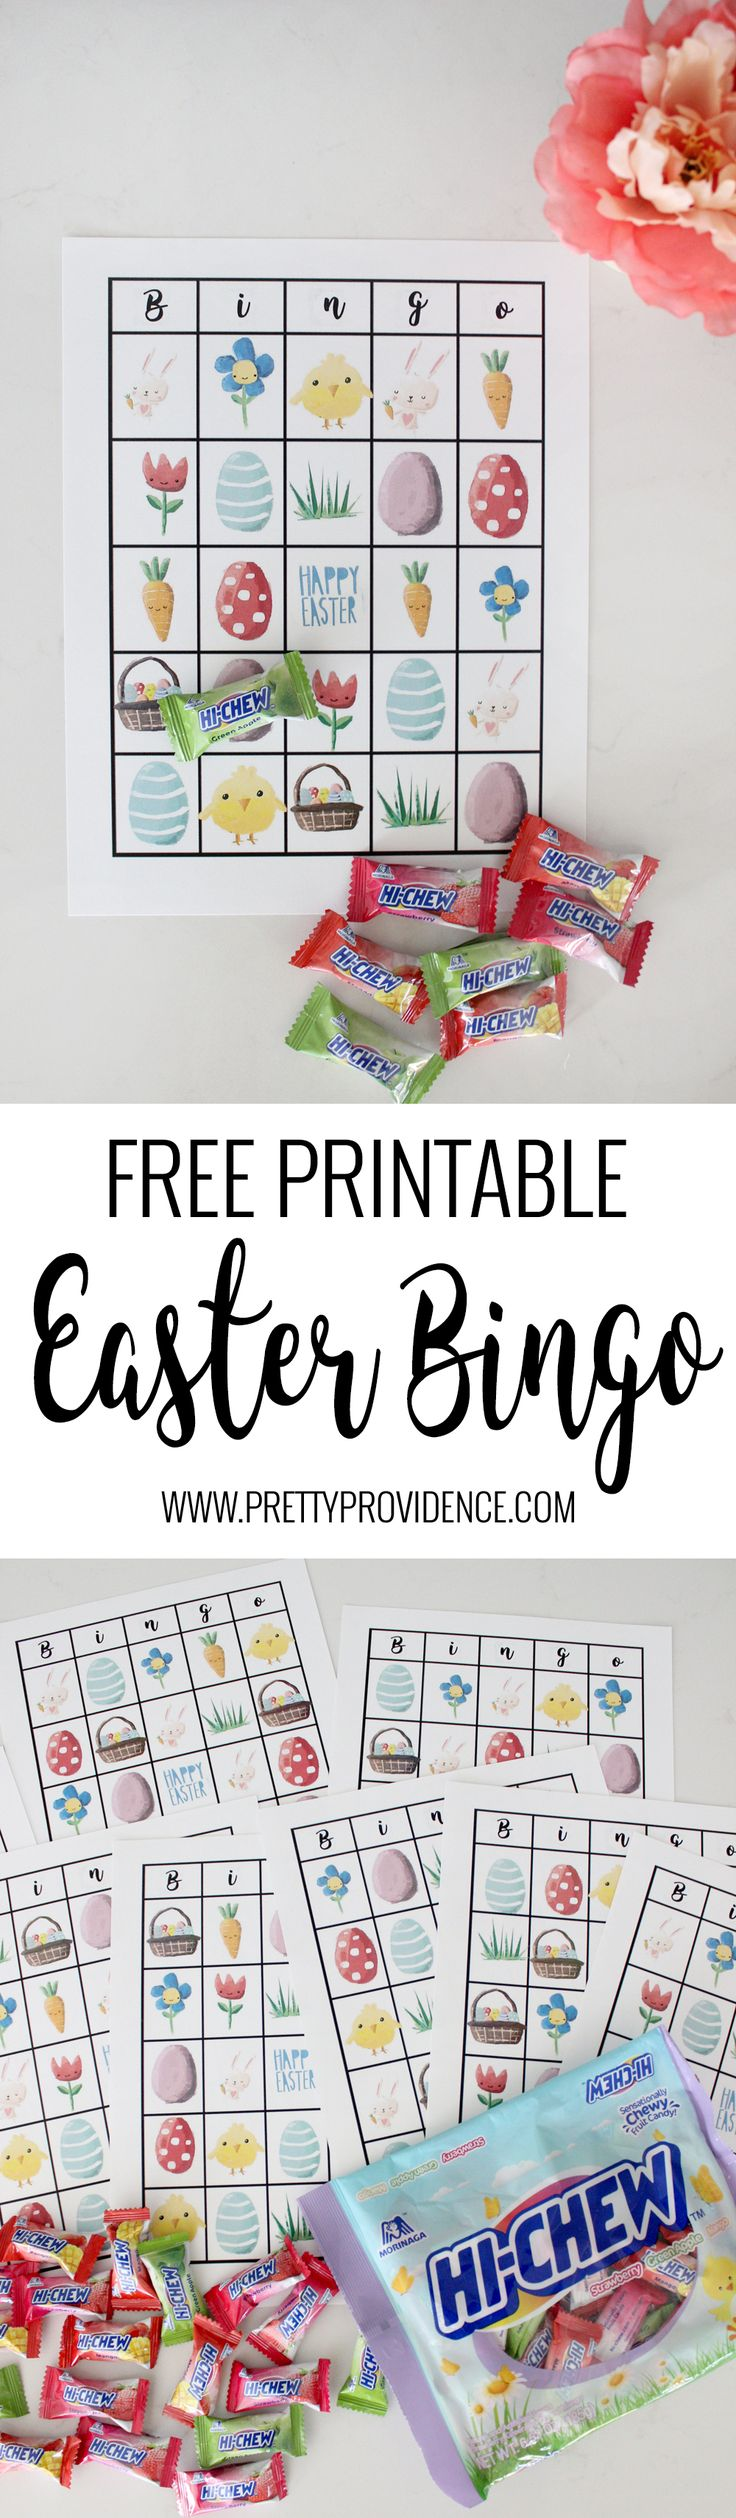 Free Printable Easter Bingo! Perfect for class parties, church classes, or just to keep the little ones entertained during Sunday gatherings! So easy to set up and the kids will LOVE it! #HiChewEaster #ad